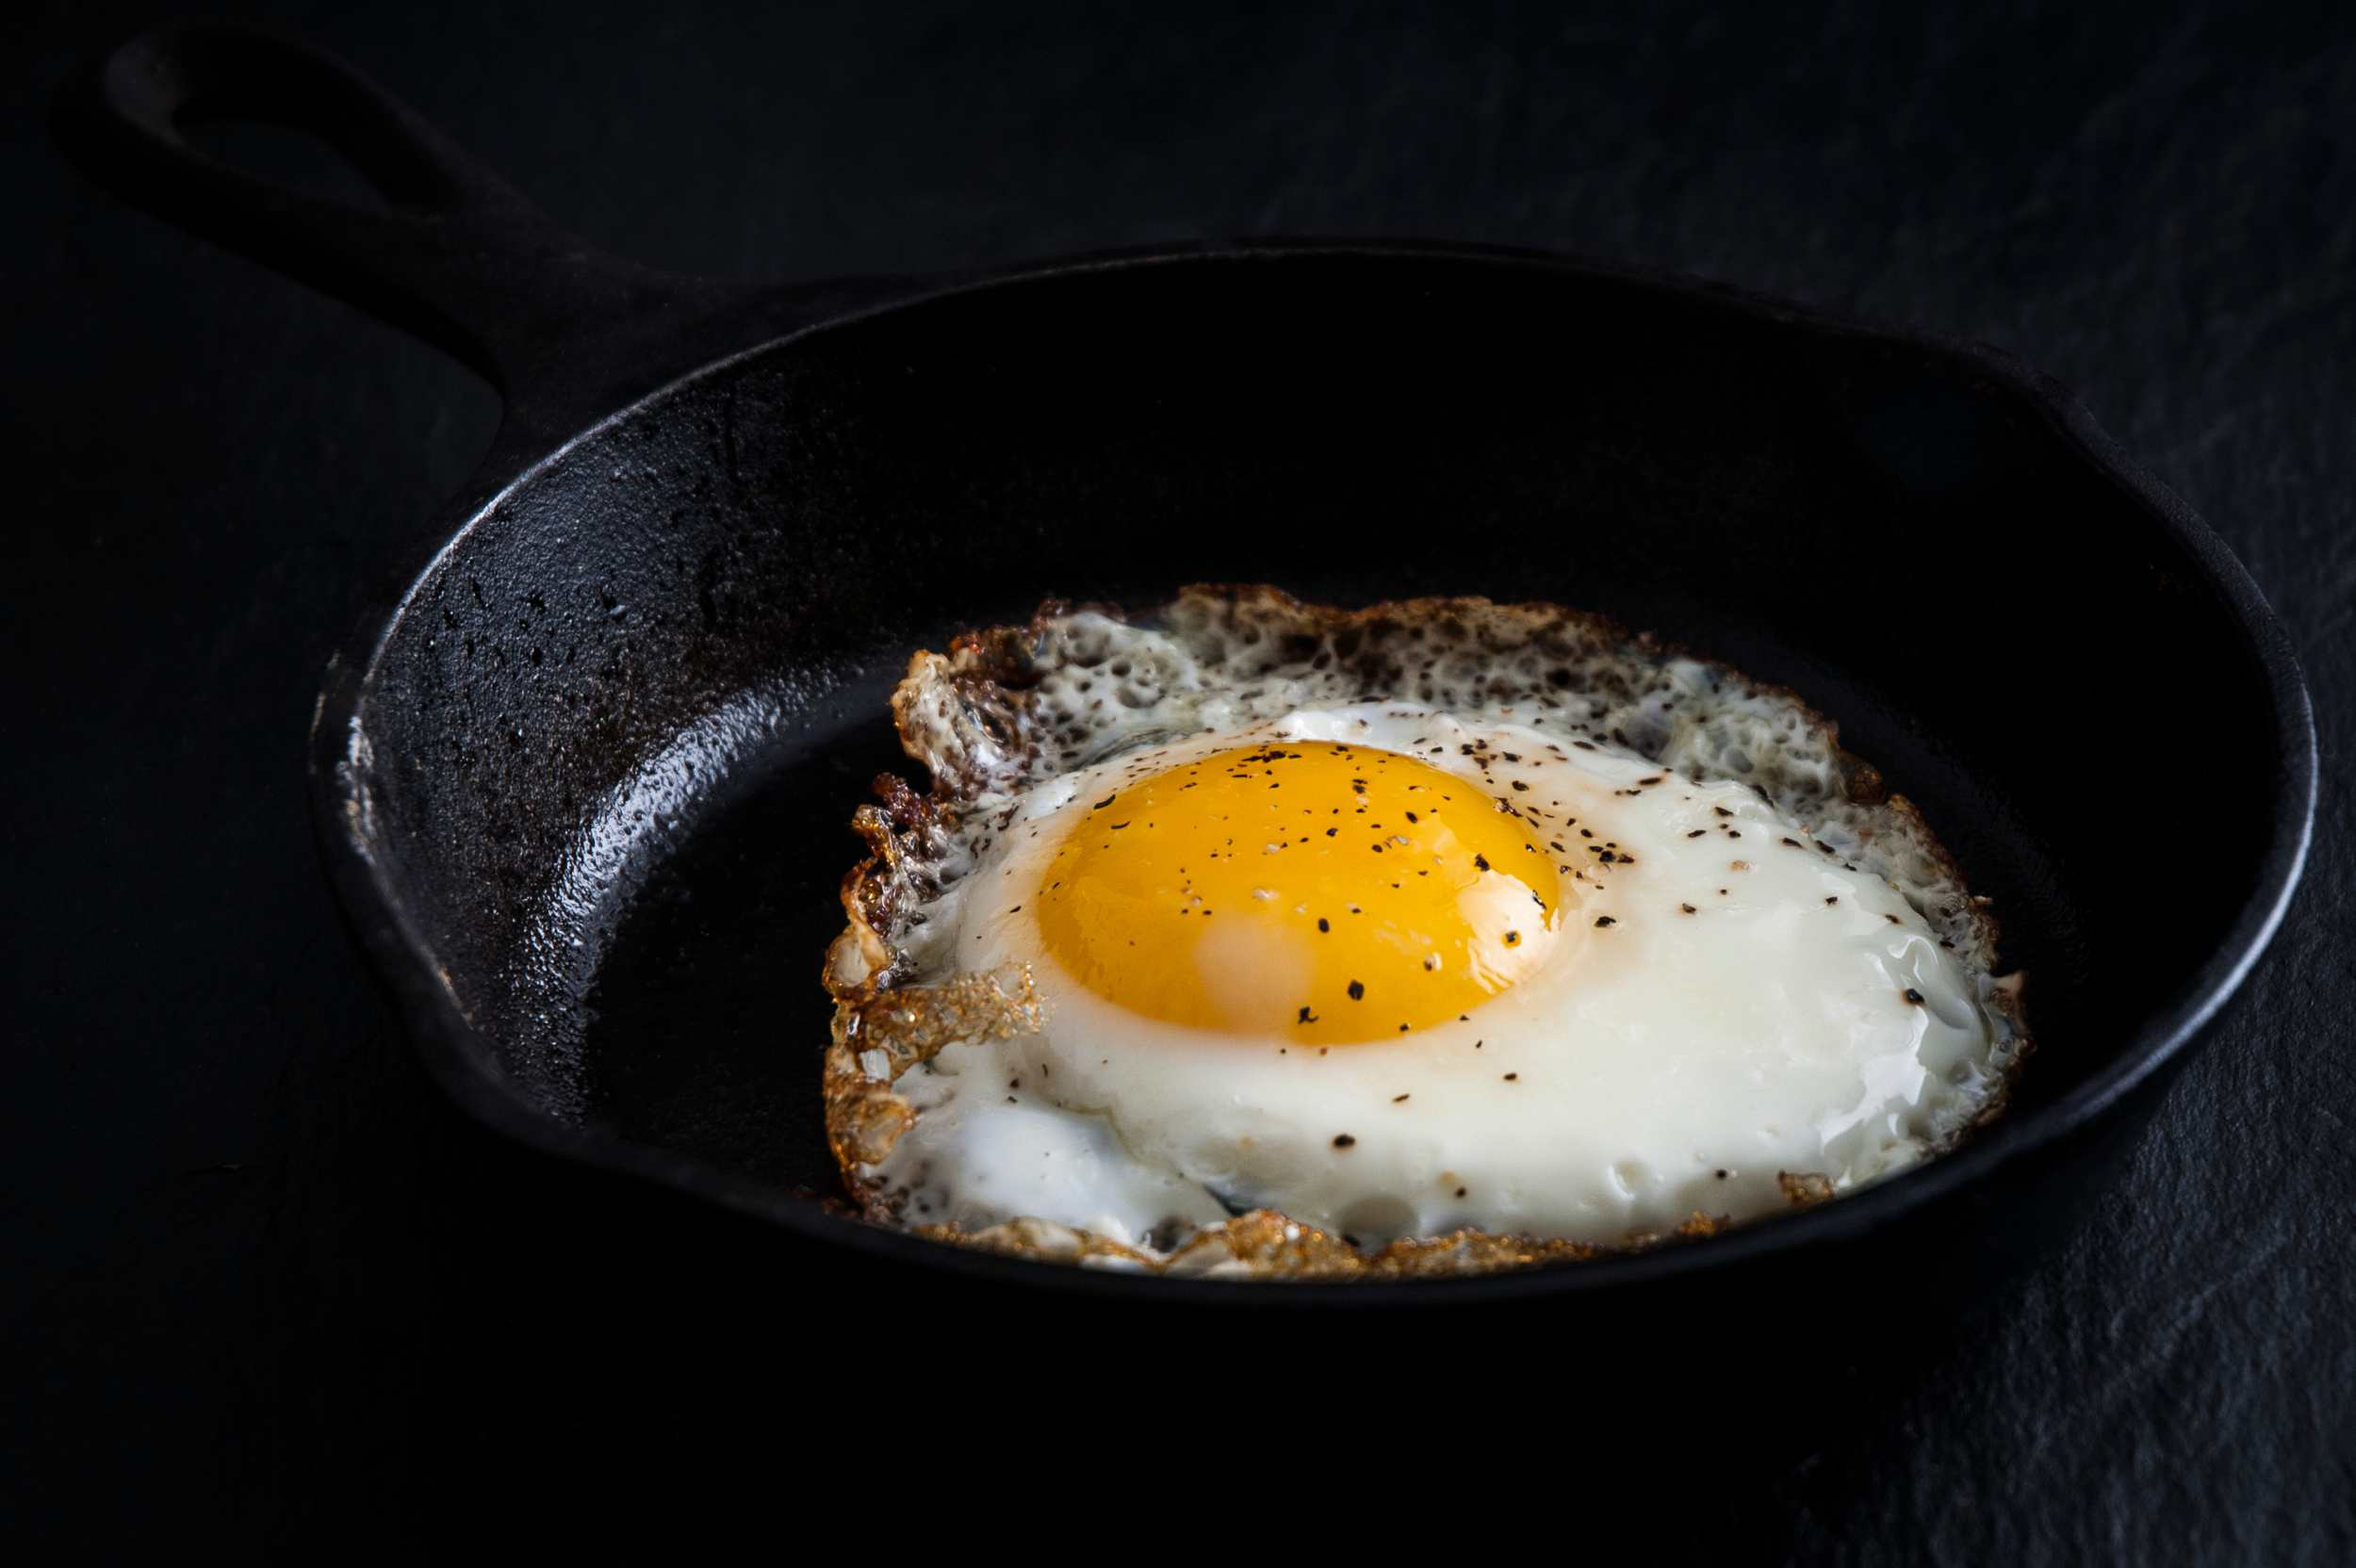 Sunny side up egg in a cast iron skillet